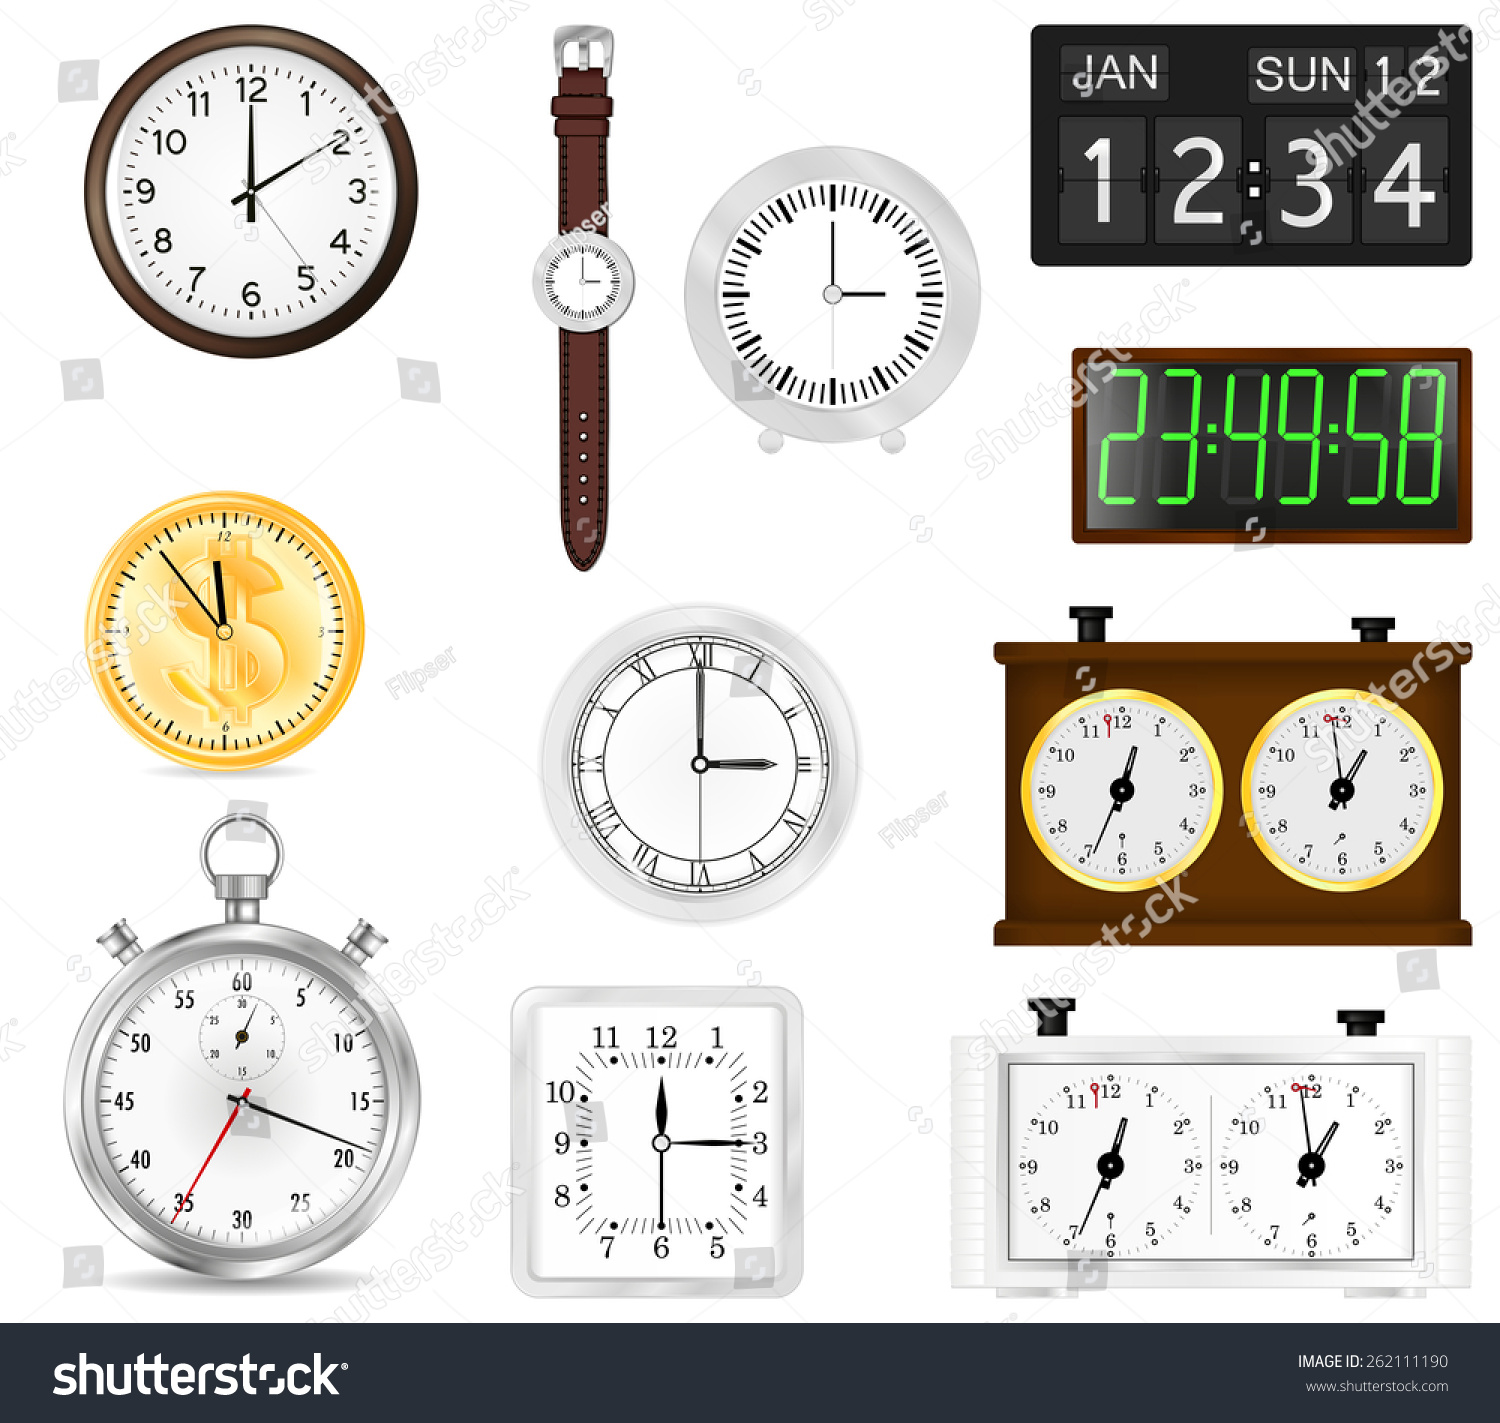 All Types Time Indication Clocks Watch Stock Illustration